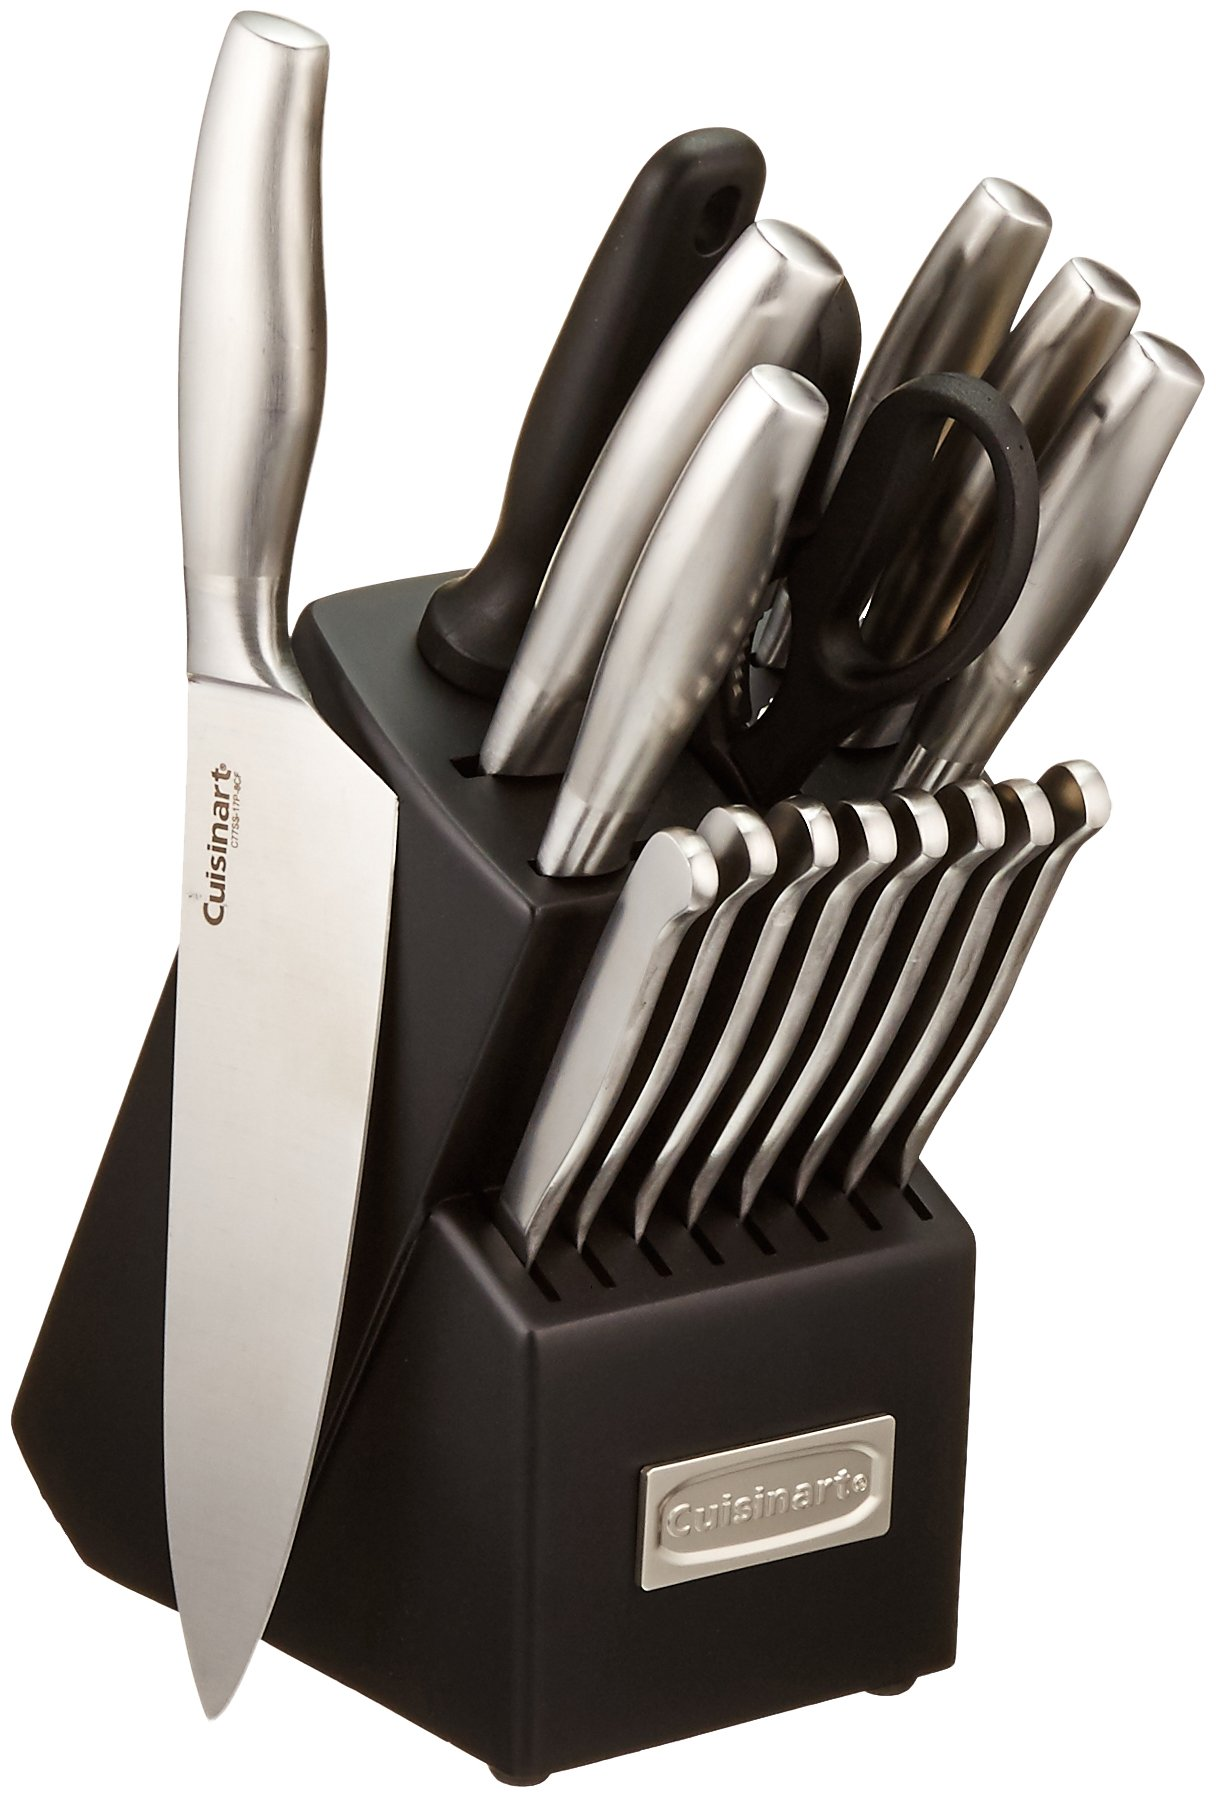 Cuisinart C77SS-17P 17-Piece Artiste Collection Cutlery Knife Block Set, Stainless Steel by Cuisinart